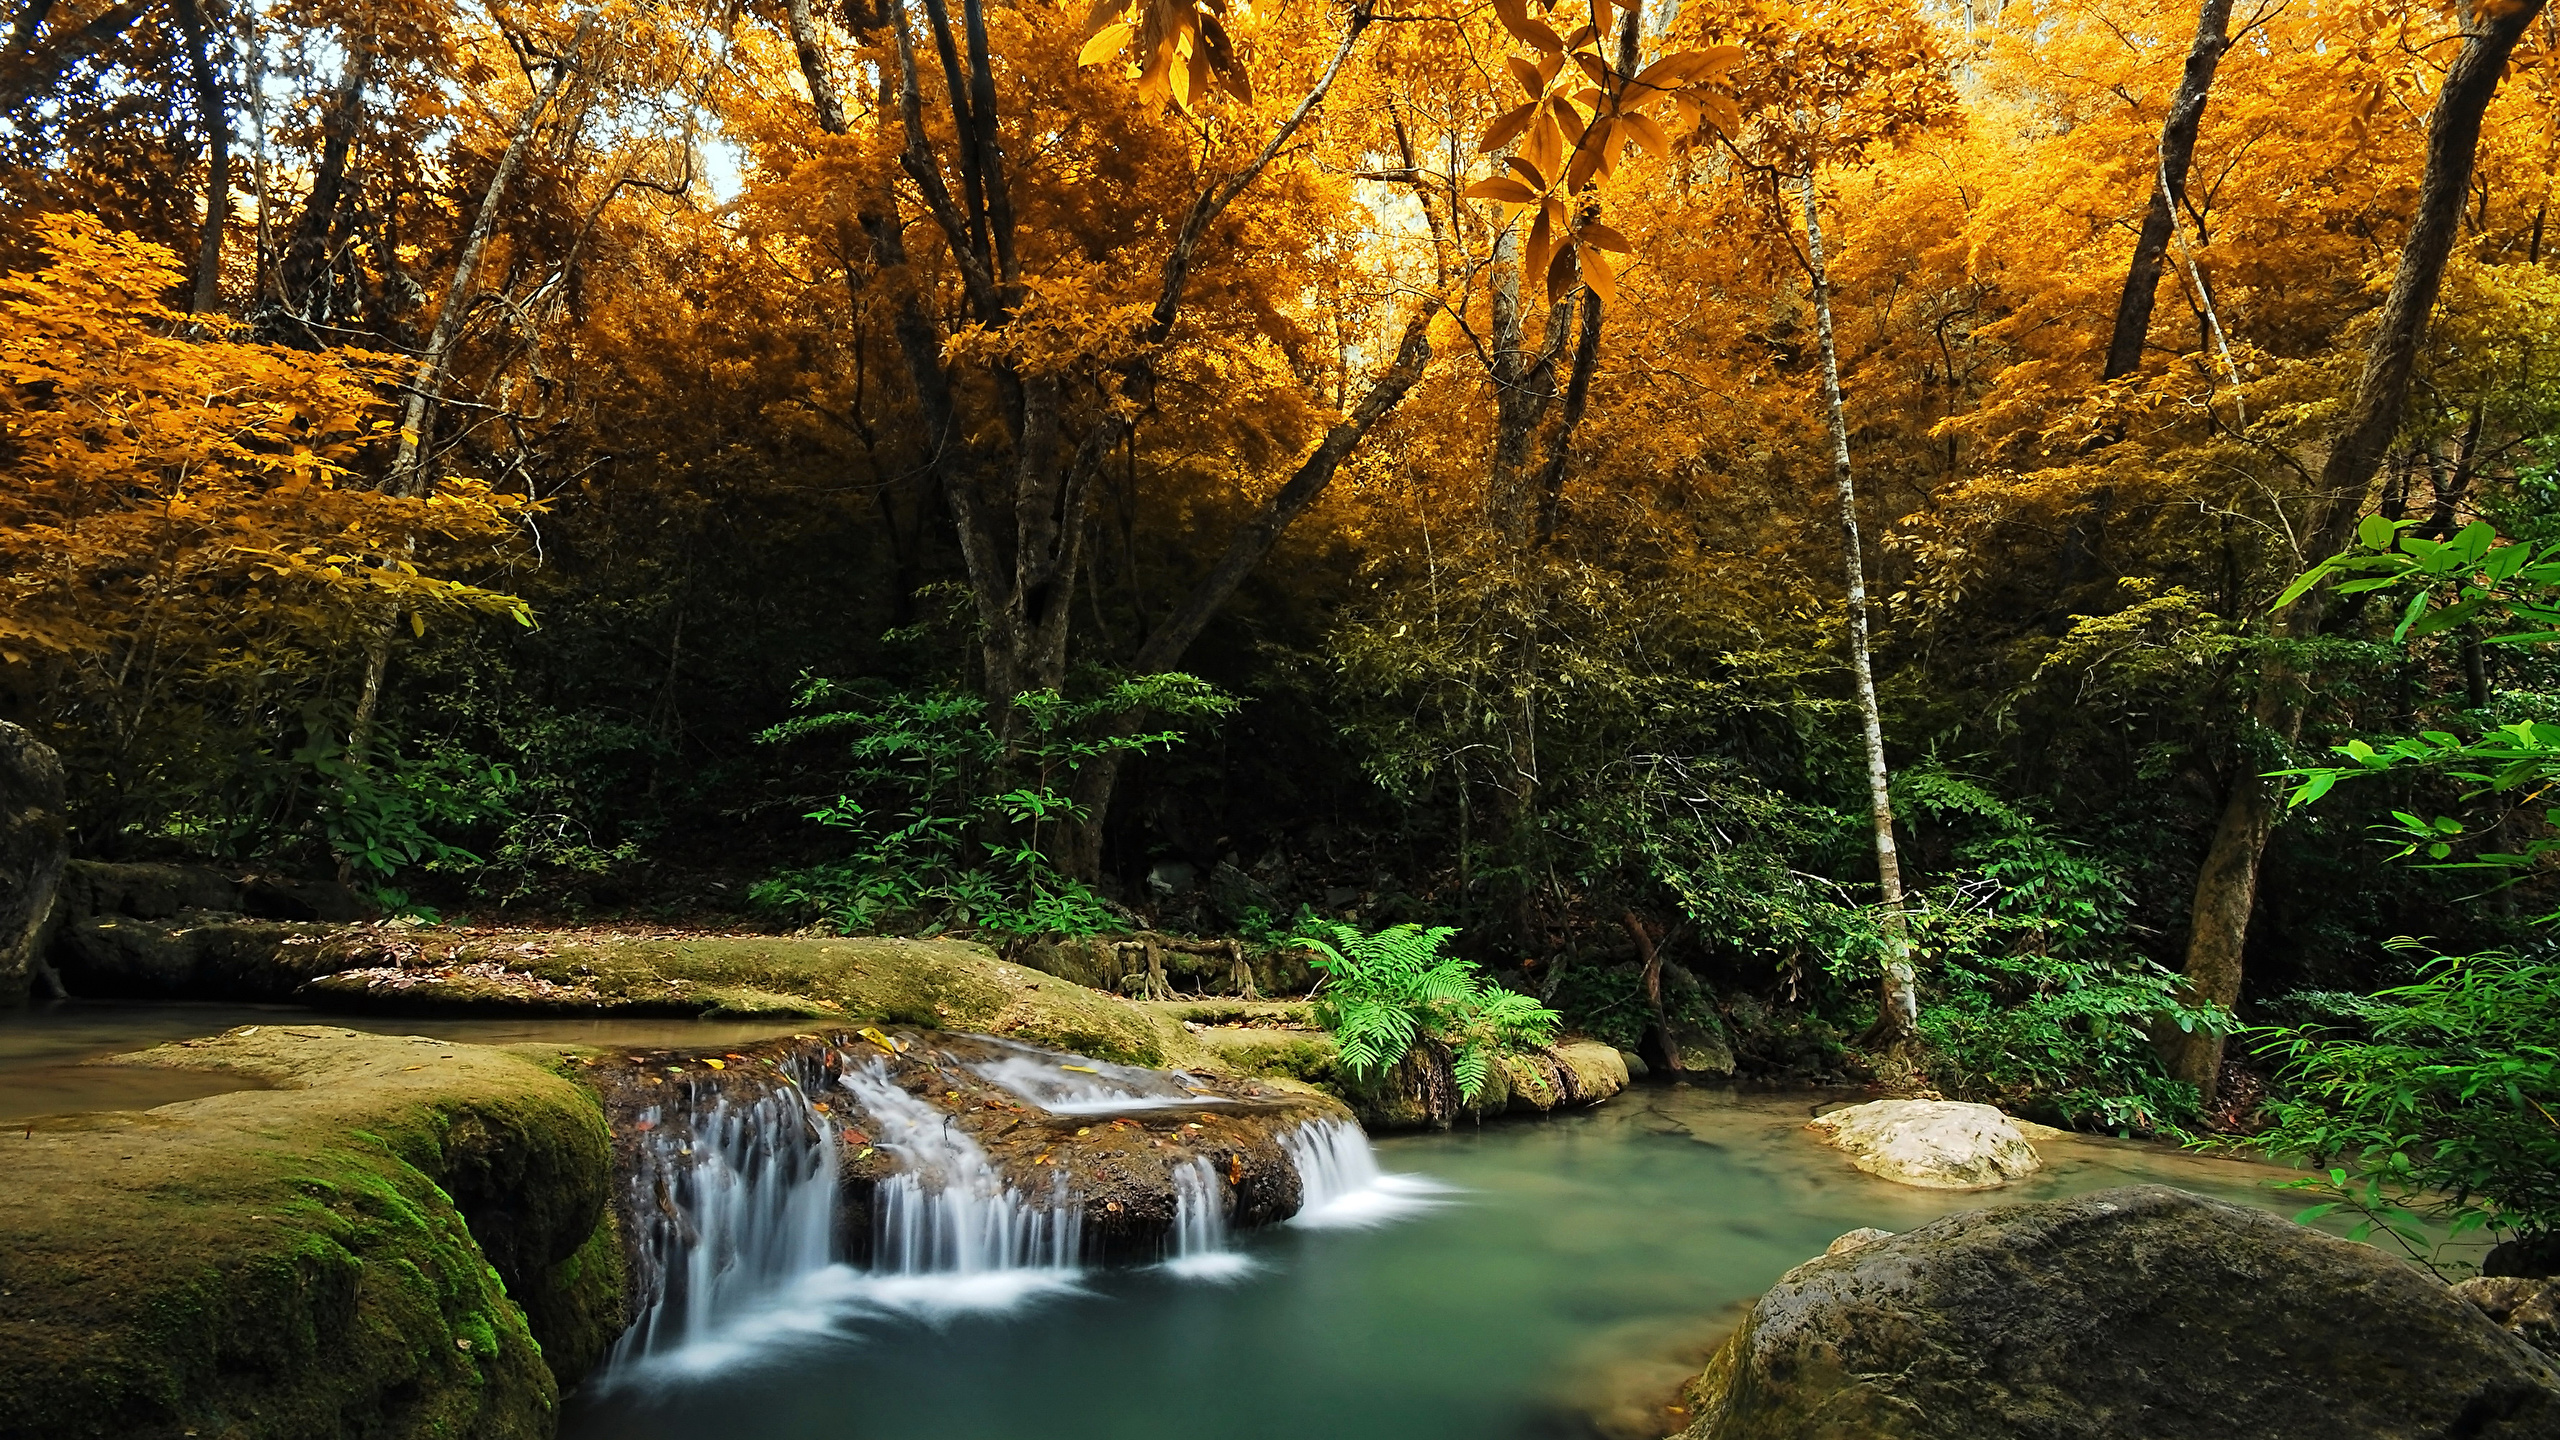 Images Autumn Nature Waterfalls Forests Trees 2560x1440